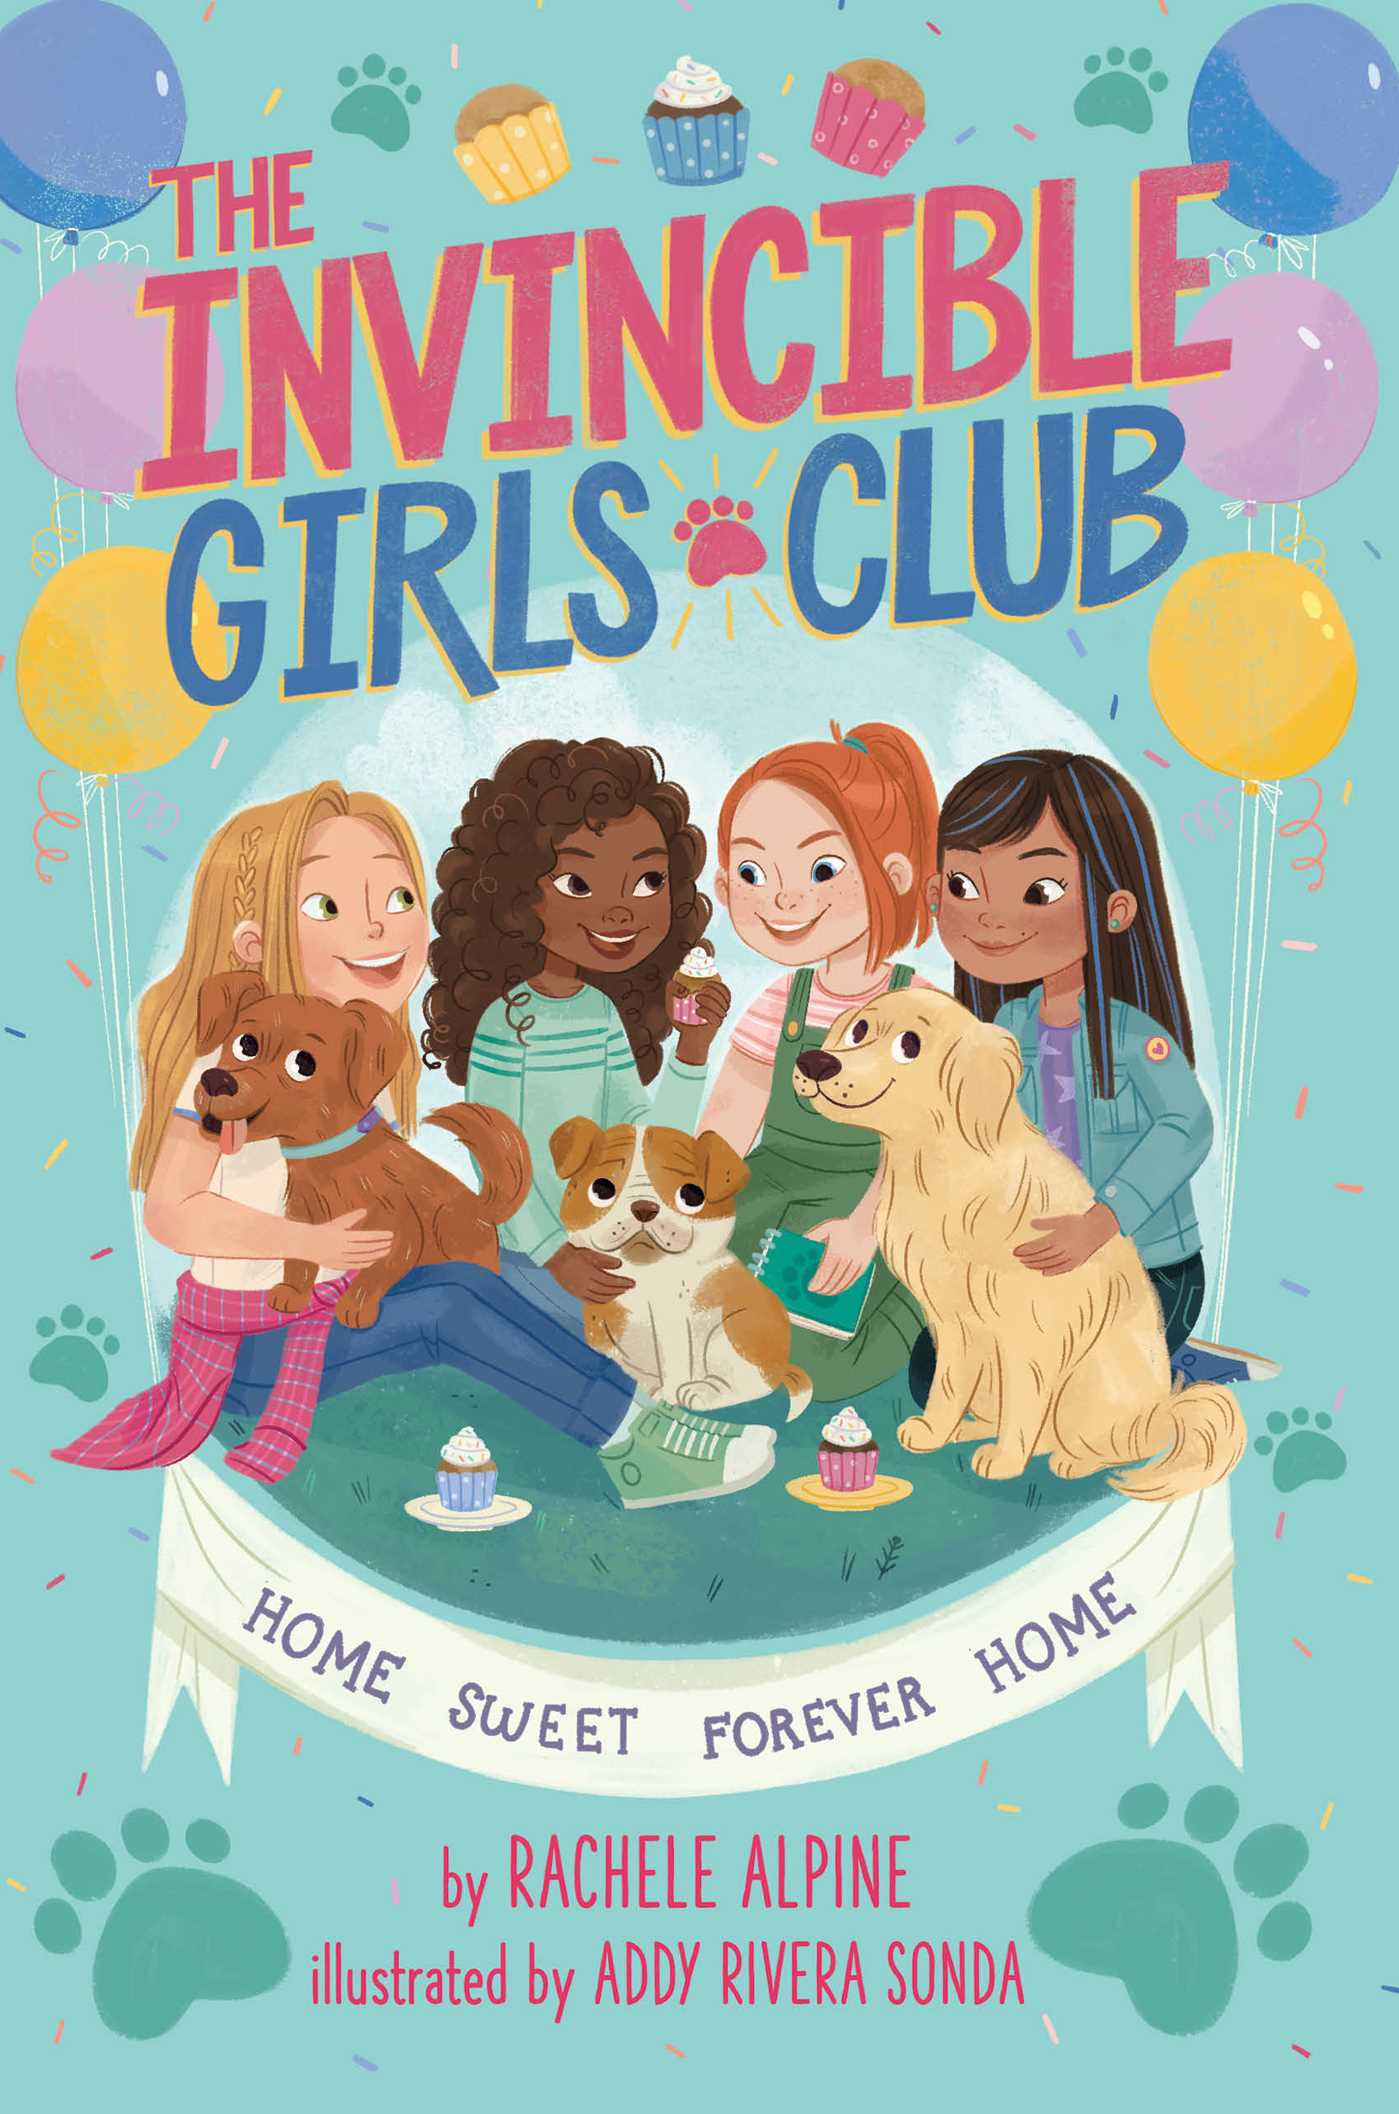 Home Sweet Forever Home (The Invincible Girls Club, #1)